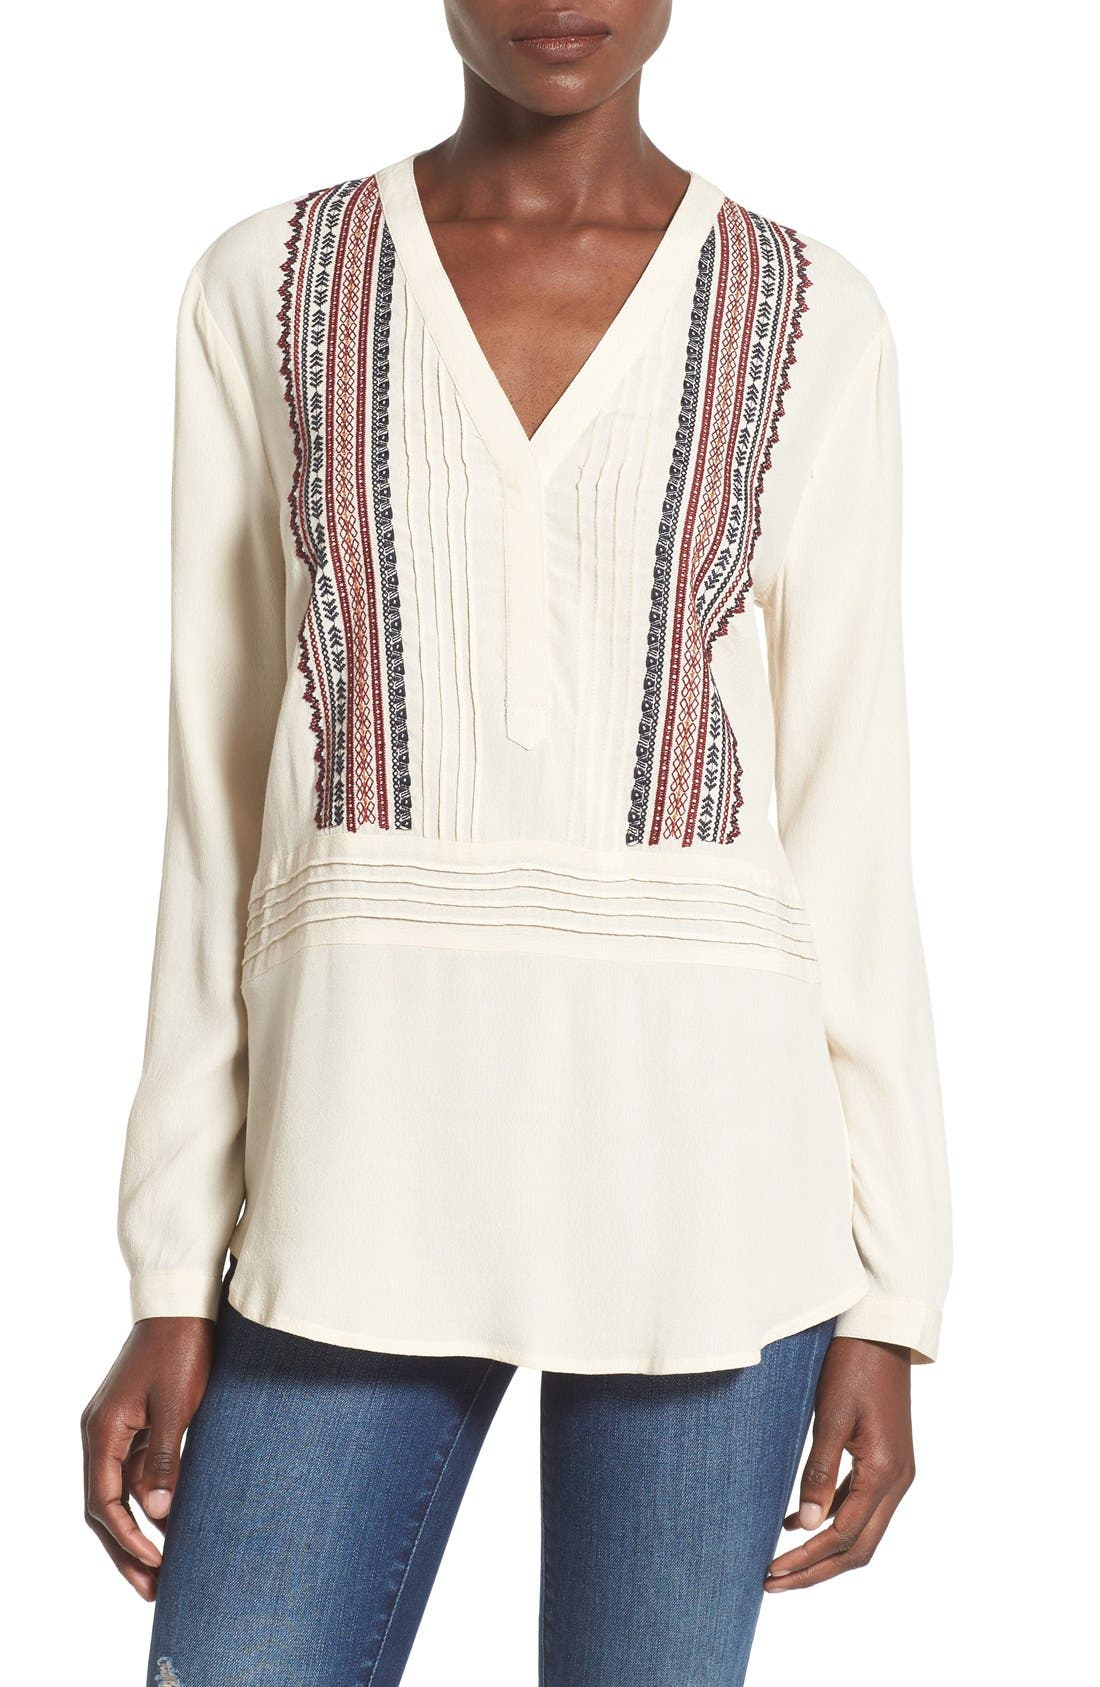 Alternate Image 1 Selected - ASTR 'Patricia' Embroidered Top